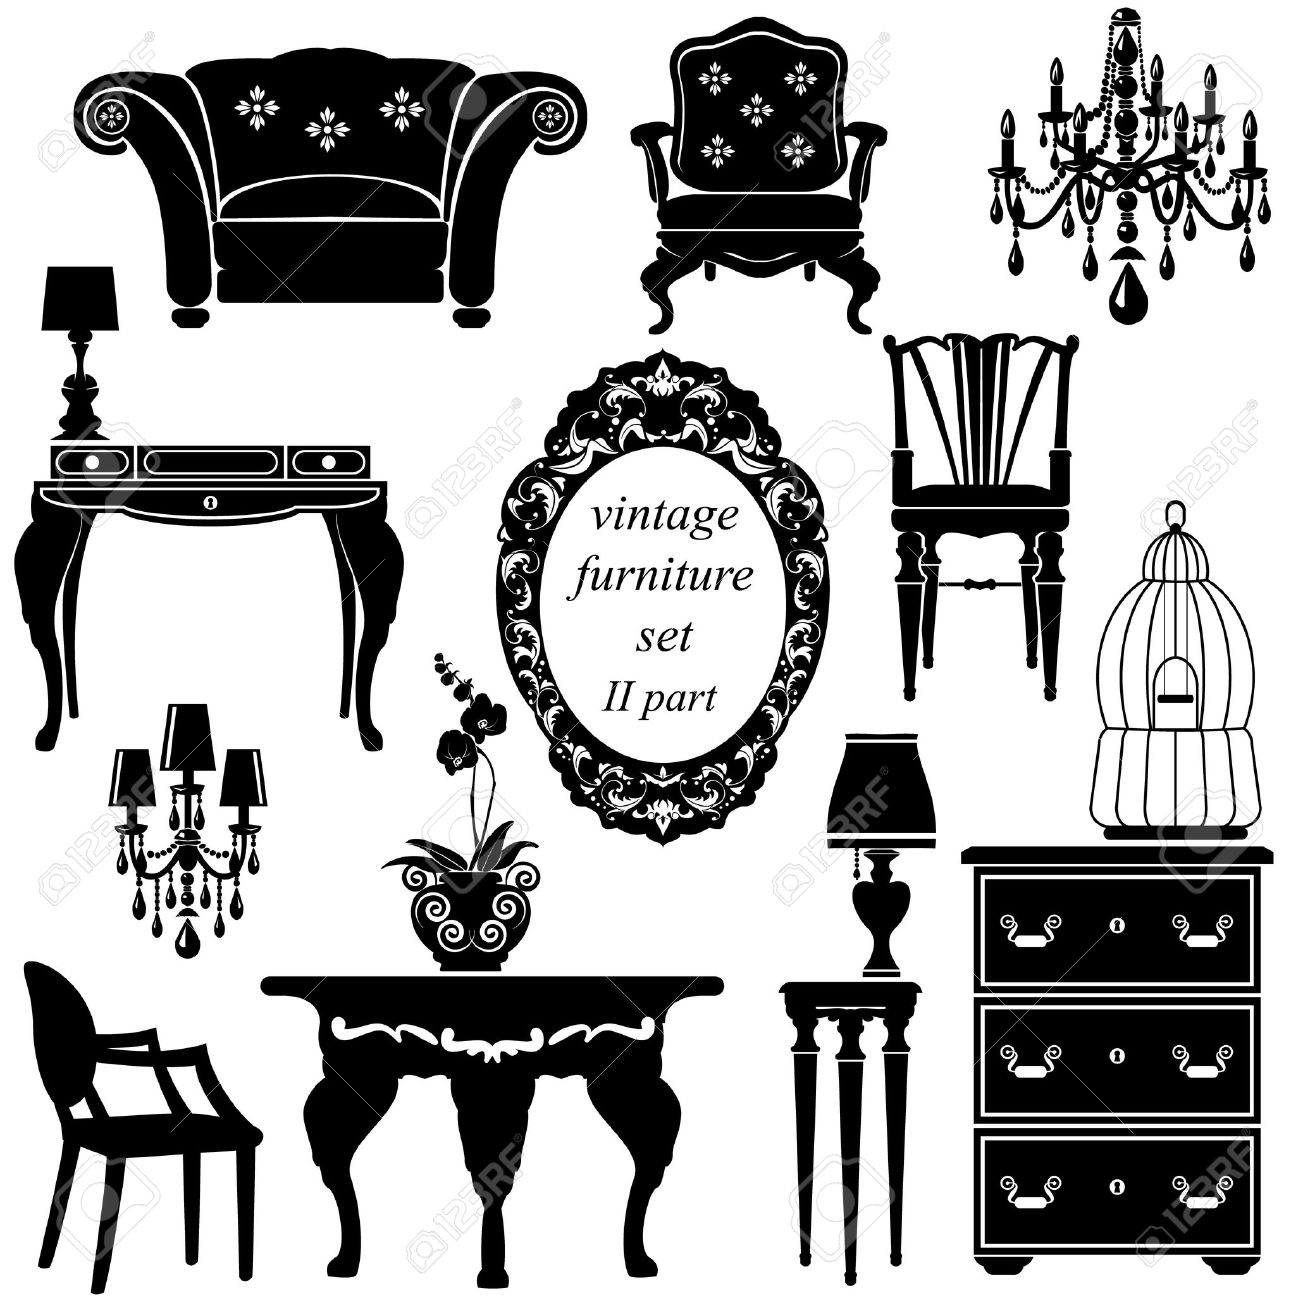 Set of antique furniture - isolated black silhouettes Stock Vector -  27580289 - Set Of Antique Furniture - Isolated Black Silhouettes Royalty Free